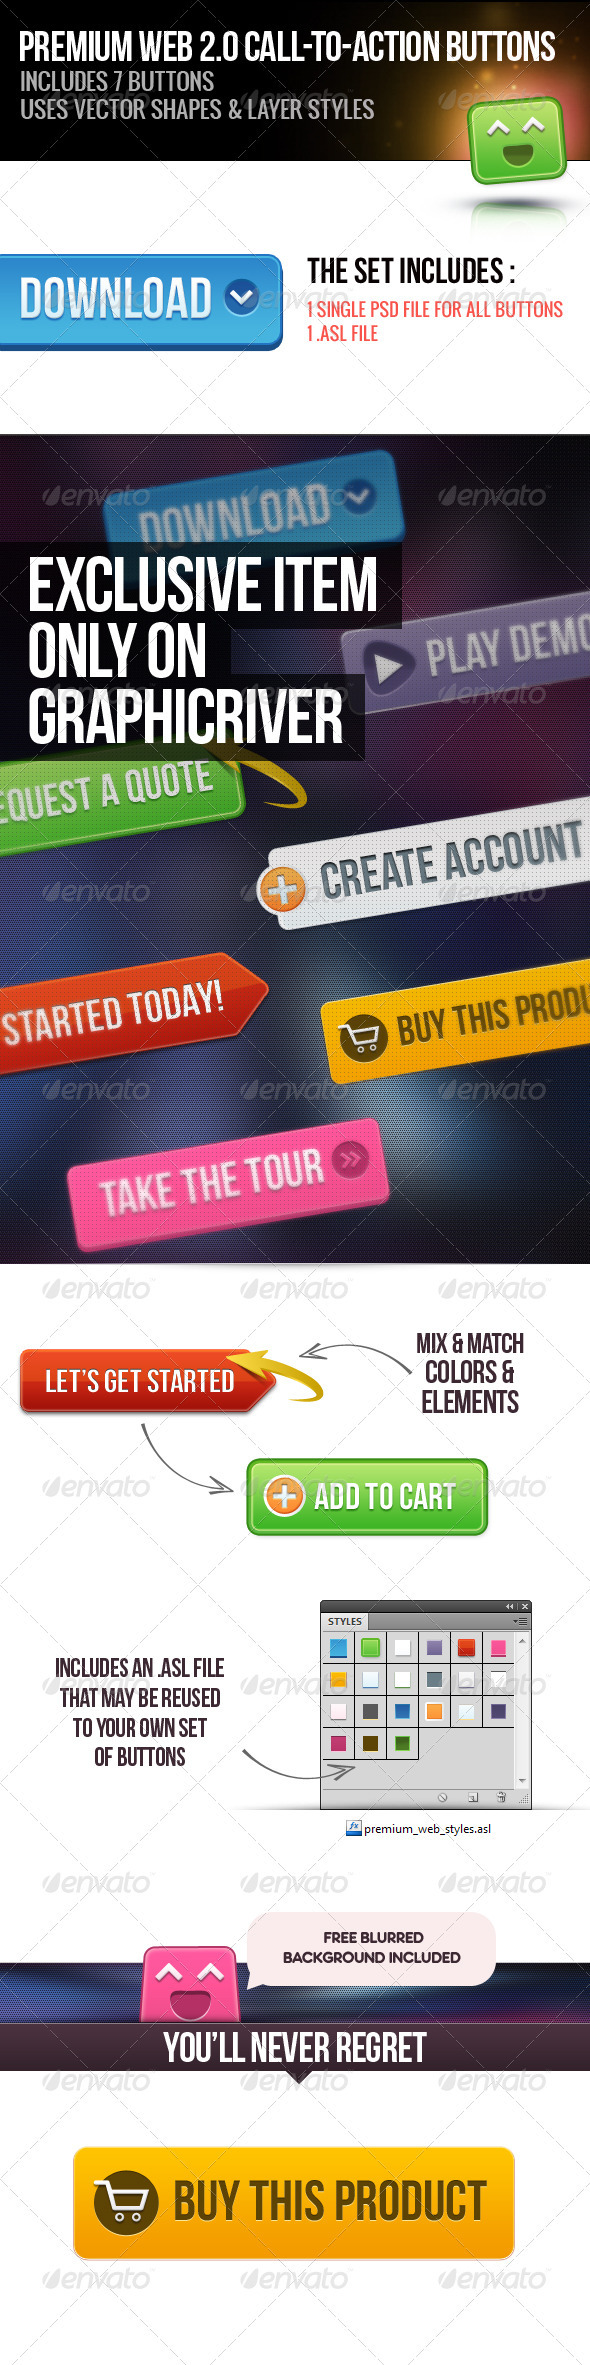 GraphicRiver Premium Web 2.0 Call to Action Buttons 3992975